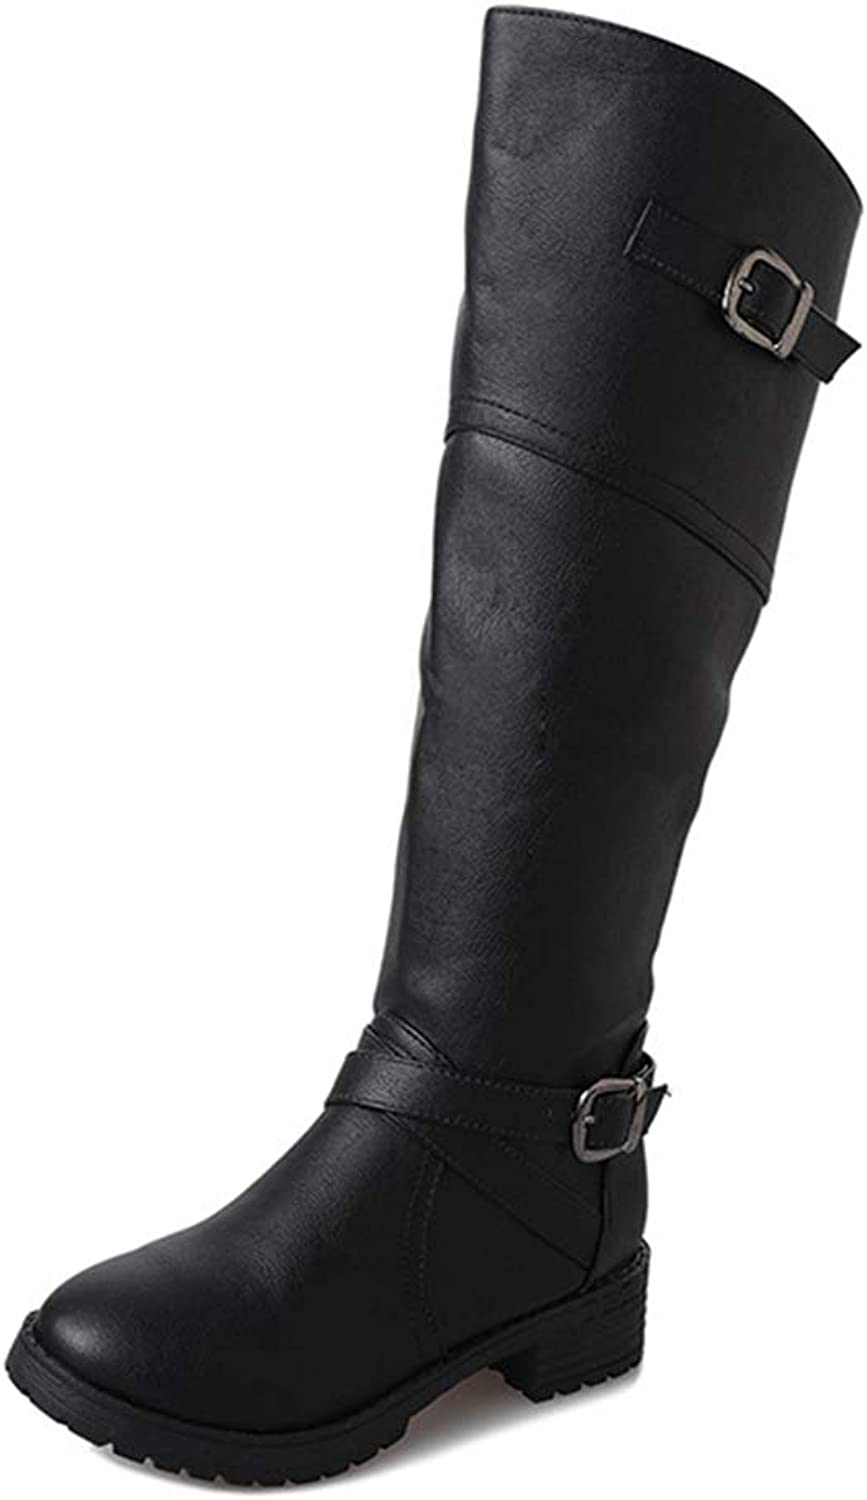 CYBLING Womens Winter Buckle Straps Knee High Motorcycle Riding Flat Low Heel Mid Calf Boots